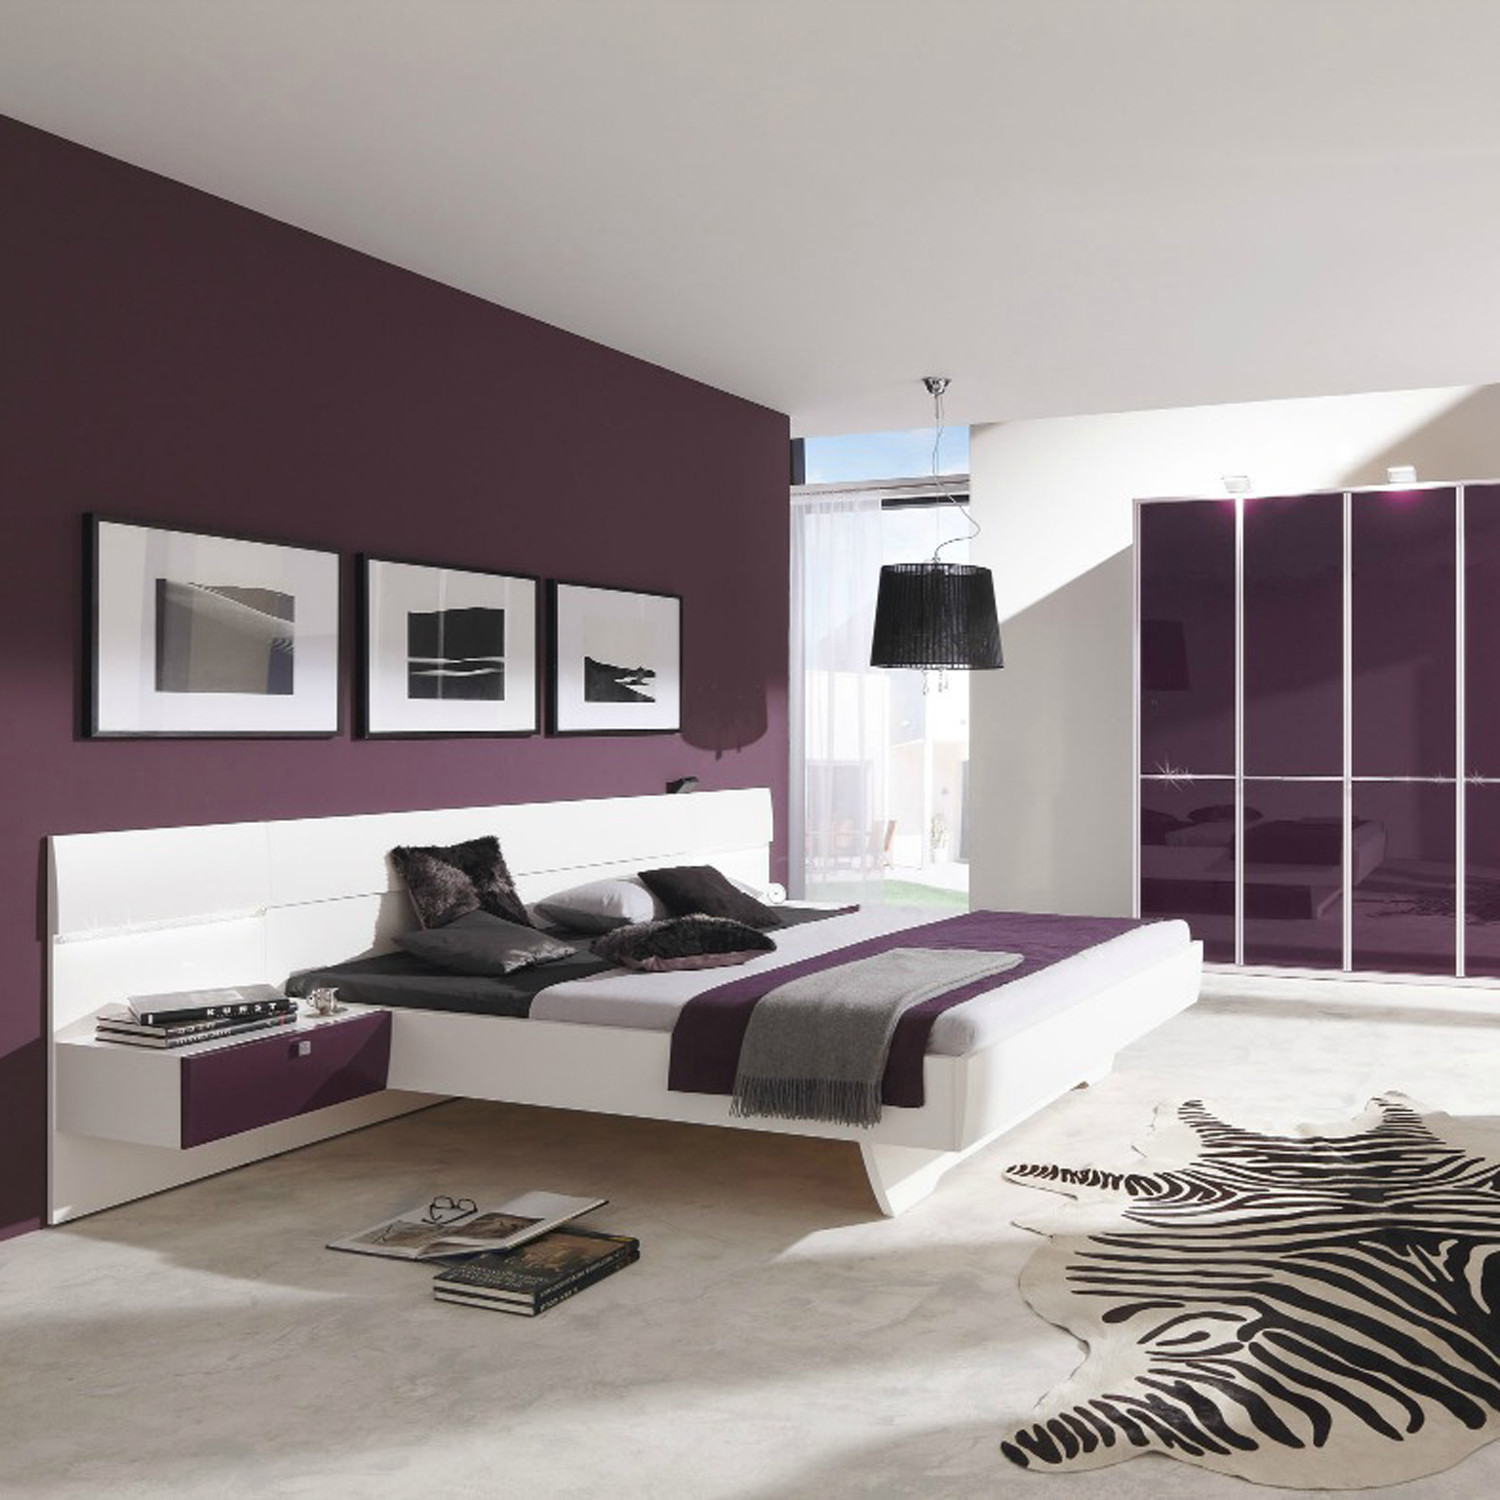 Eggplant Bedroom Decorating Ideas Bedroom Wallpaper Ideas B Q Master Bedroom Design Ideas Pictures Super Hero Bedroom Accessories: Grey And Eggplant Bedroom. Eggplant Paint Bedroom. Taupe